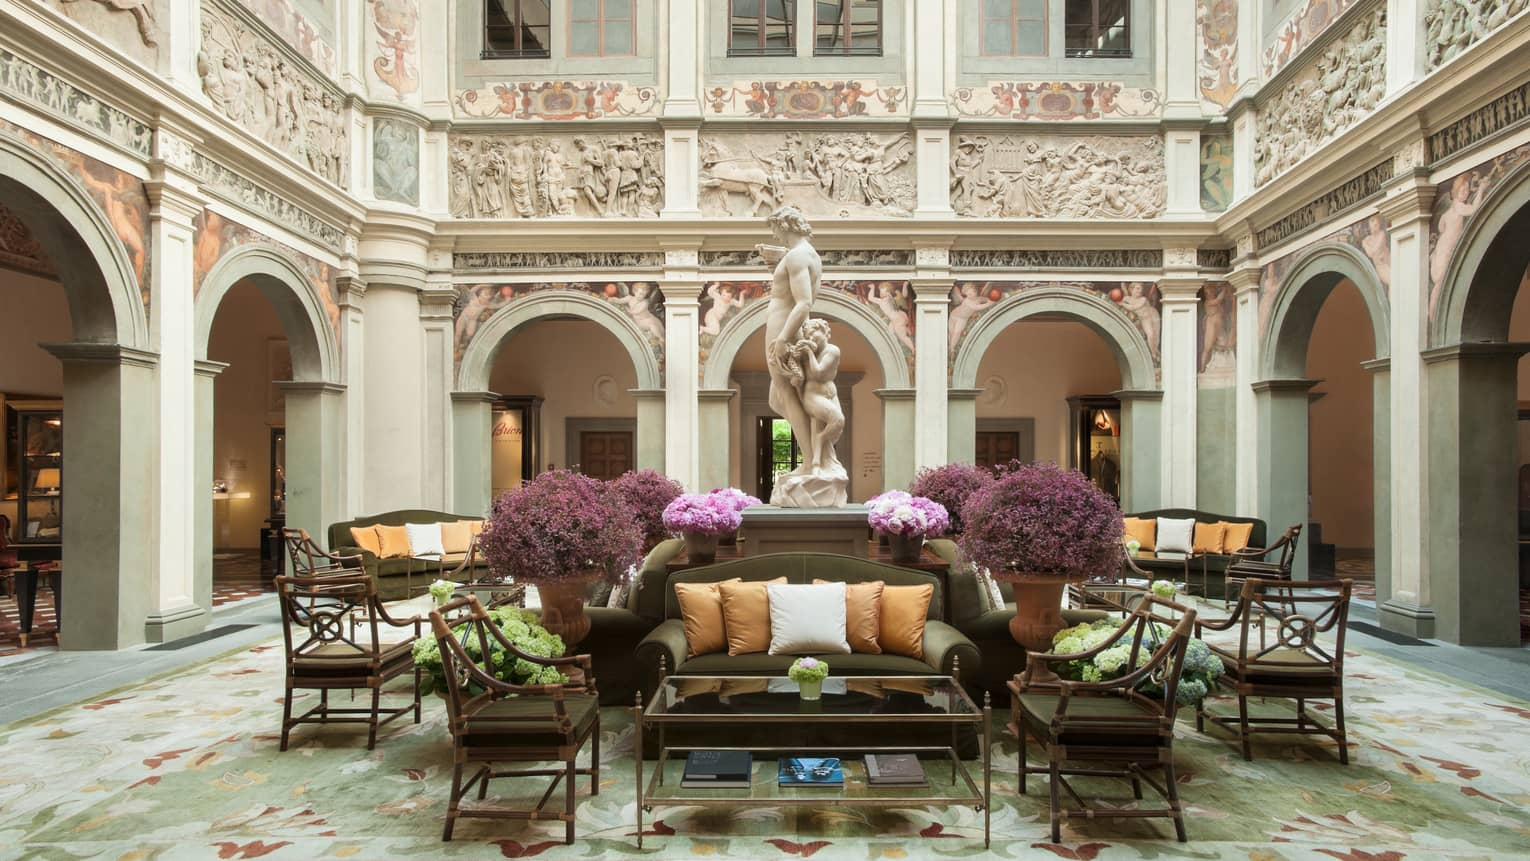 Albergo Firenze Florence Italy Florence Hotel Luxury Hotel In Florence Four Seasons Hotel Firenze